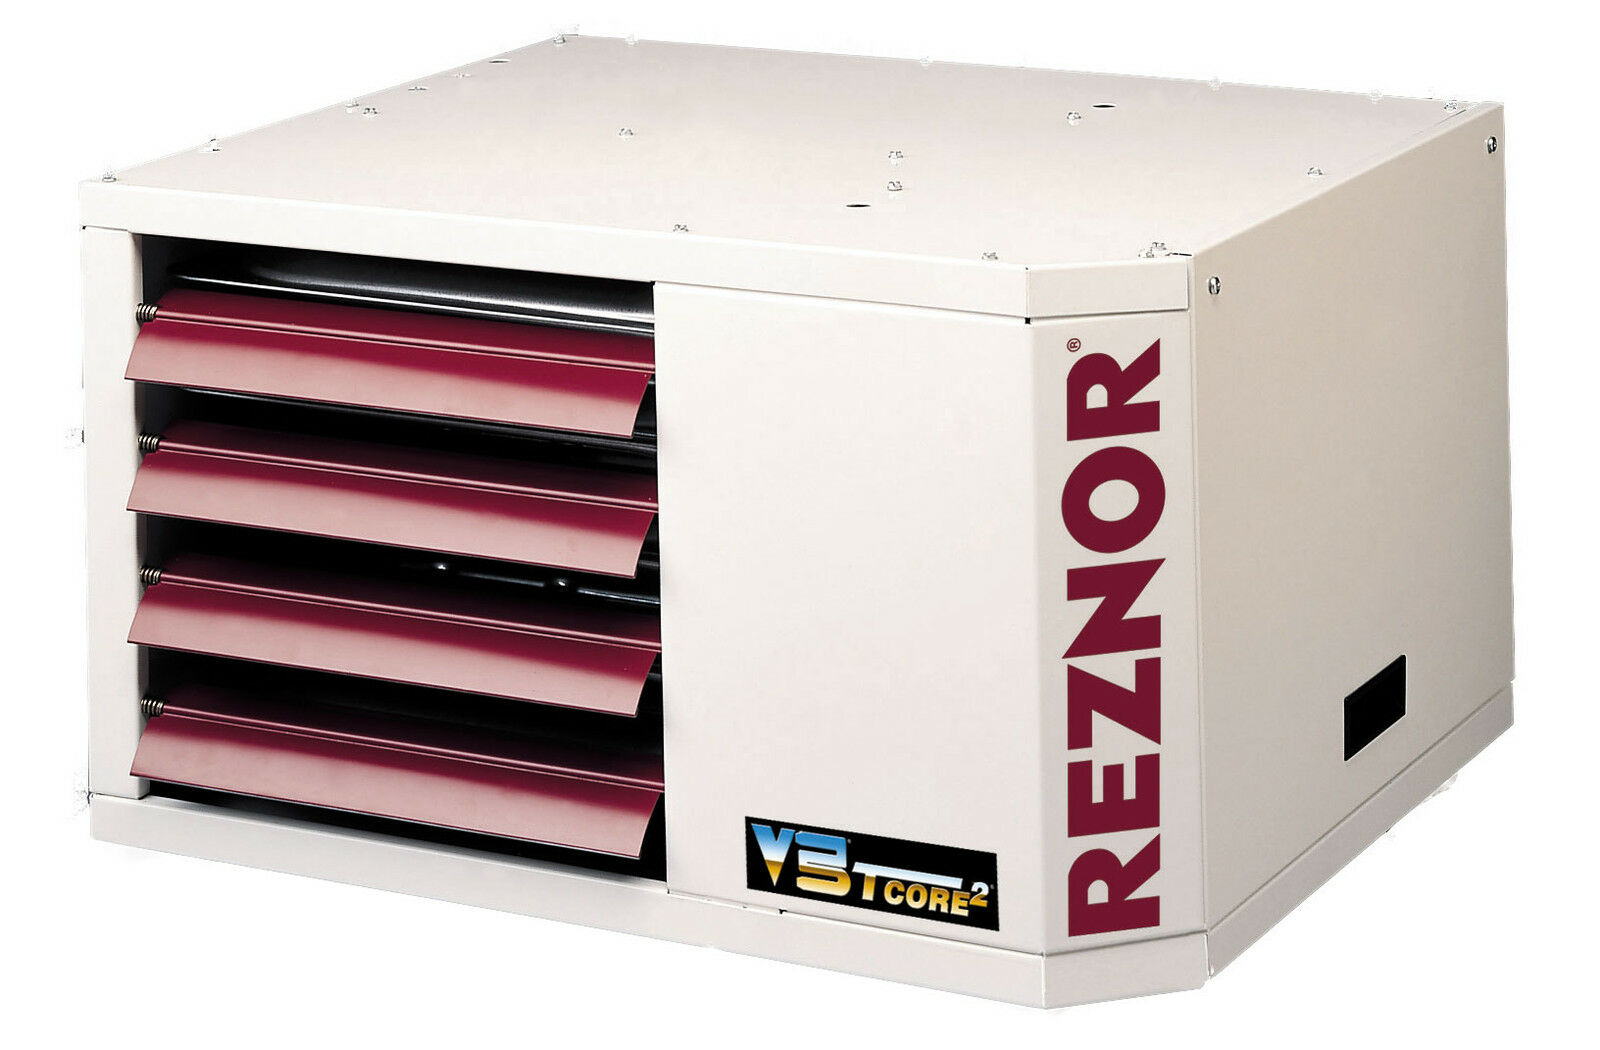 hight resolution of reznor udap 300 300 000 btu v3 power vented gas fired unit heater new